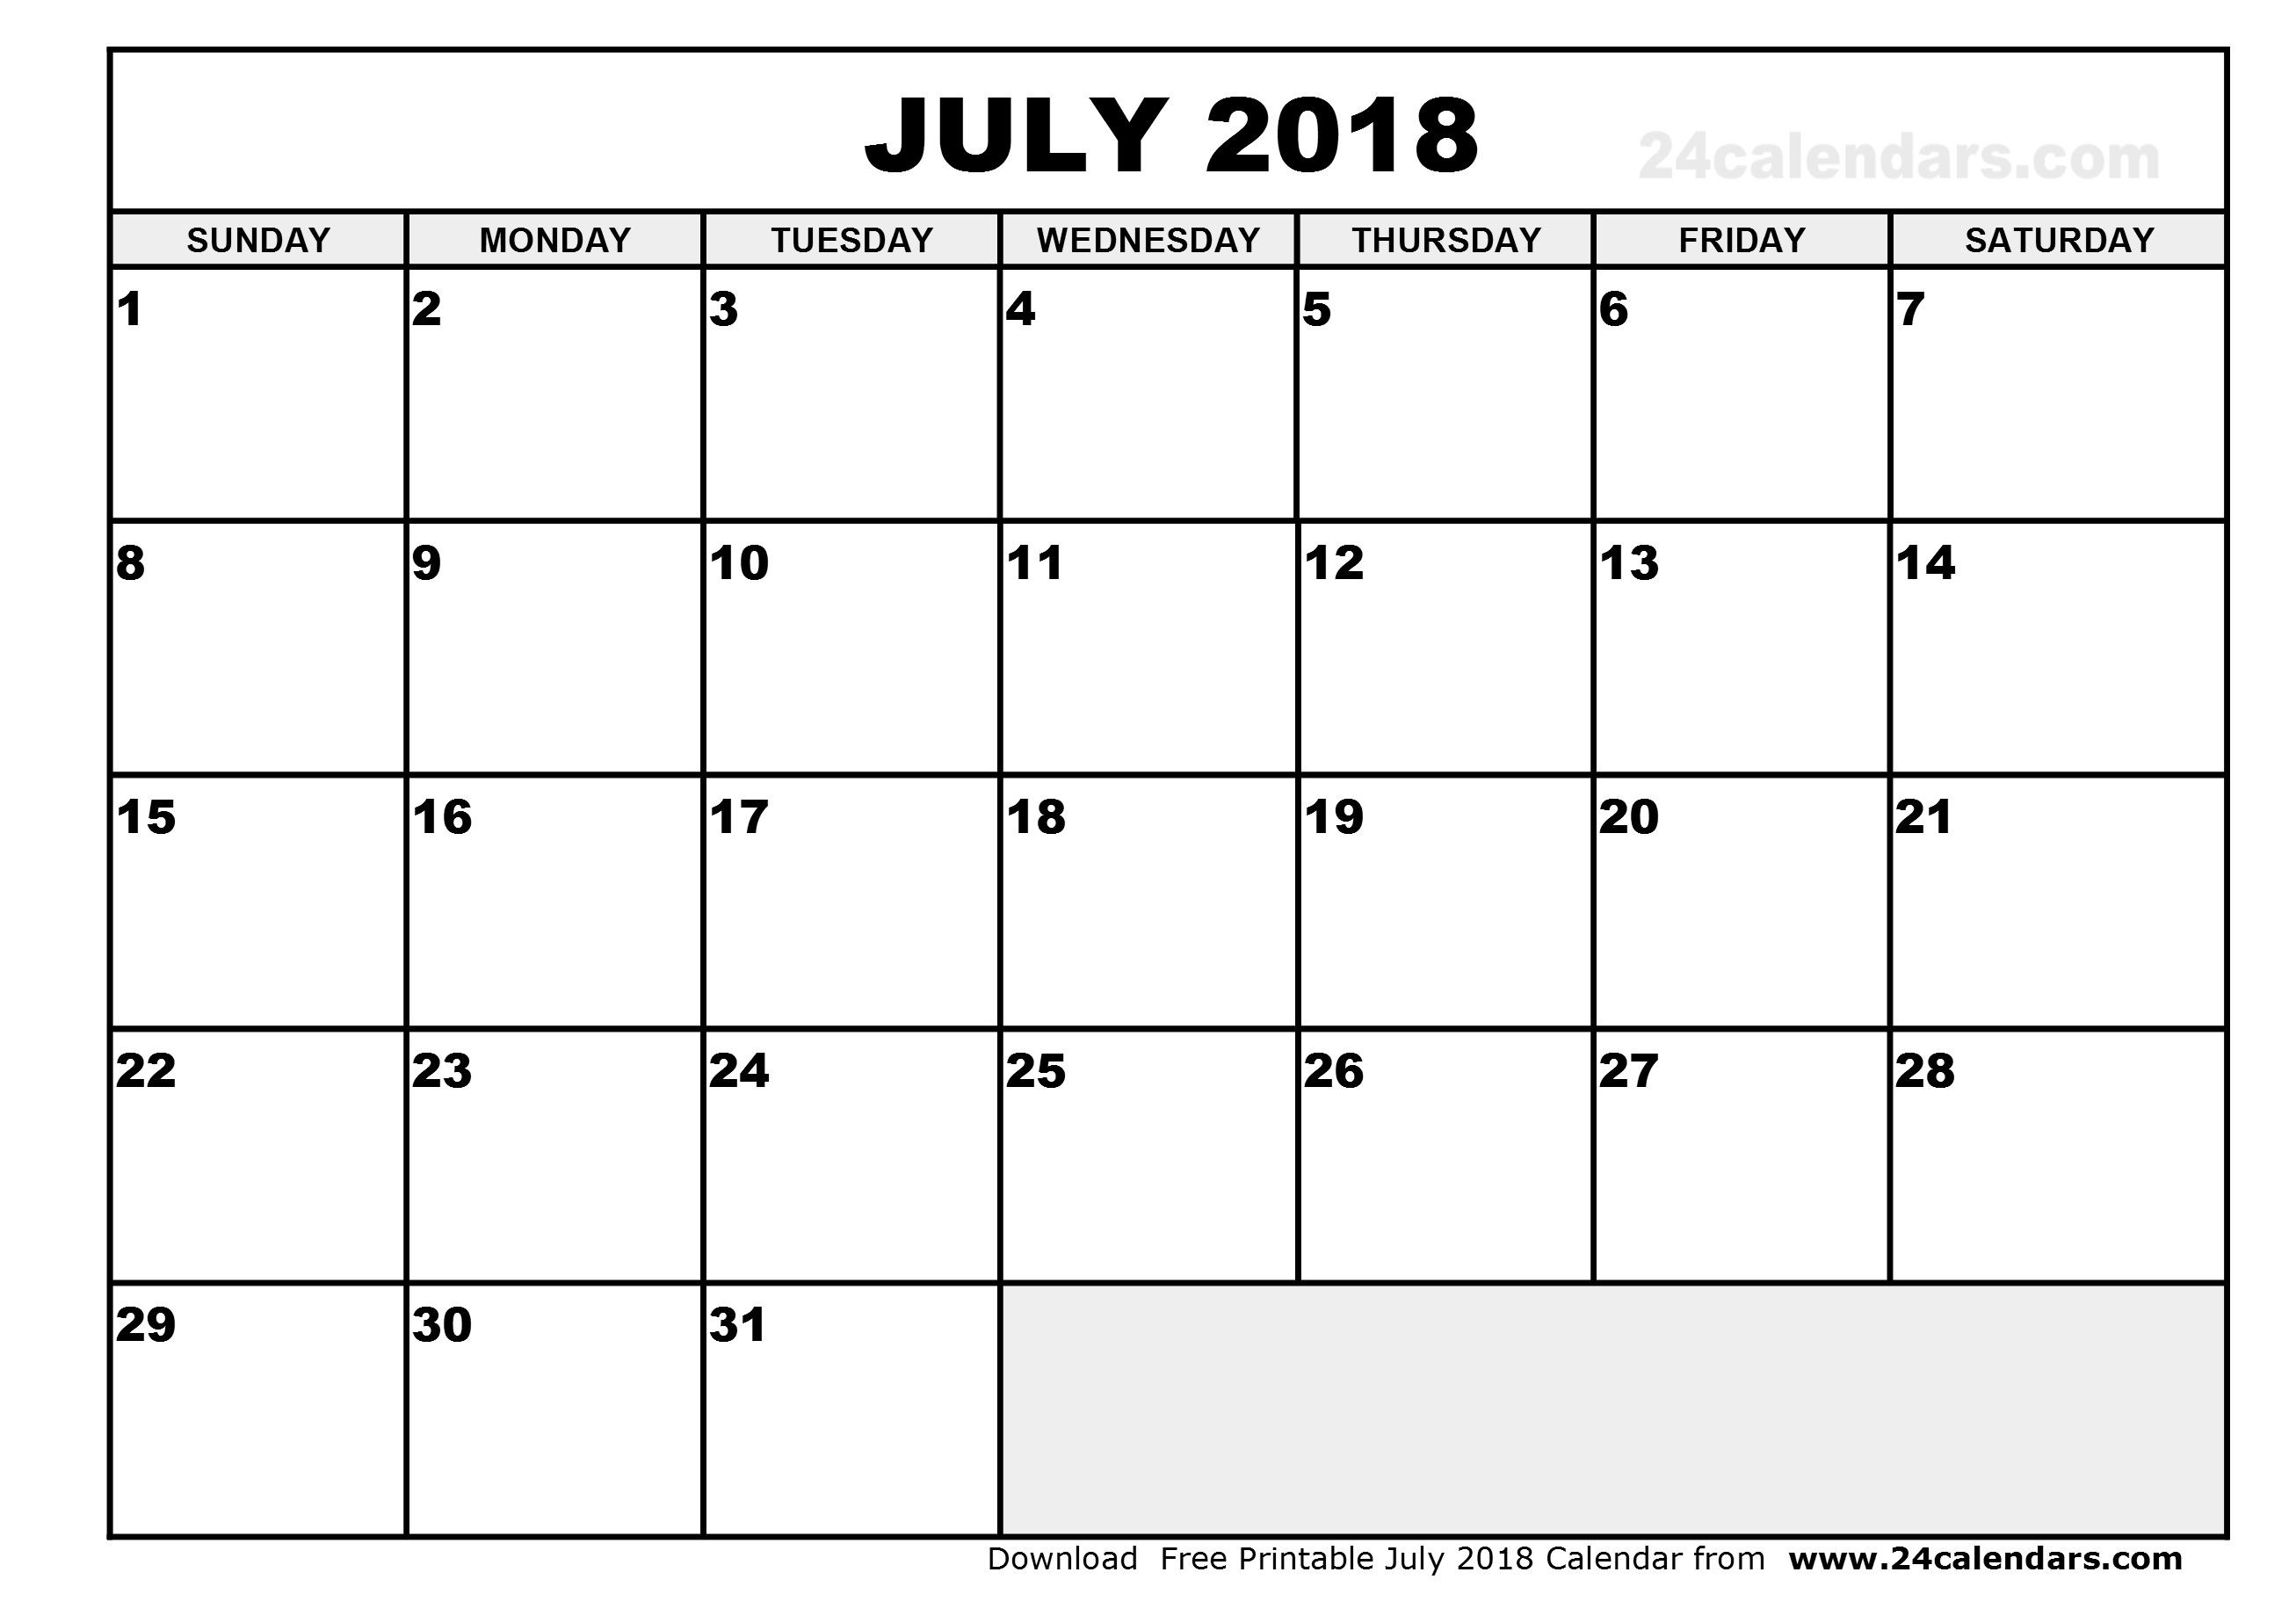 Como Imprimir Un Calendario En Word Más Recientemente Liberado Pin by Calendar On July 2018 Calendar Pinterest Of Como Imprimir Un Calendario En Word Recientes Calendario 2017